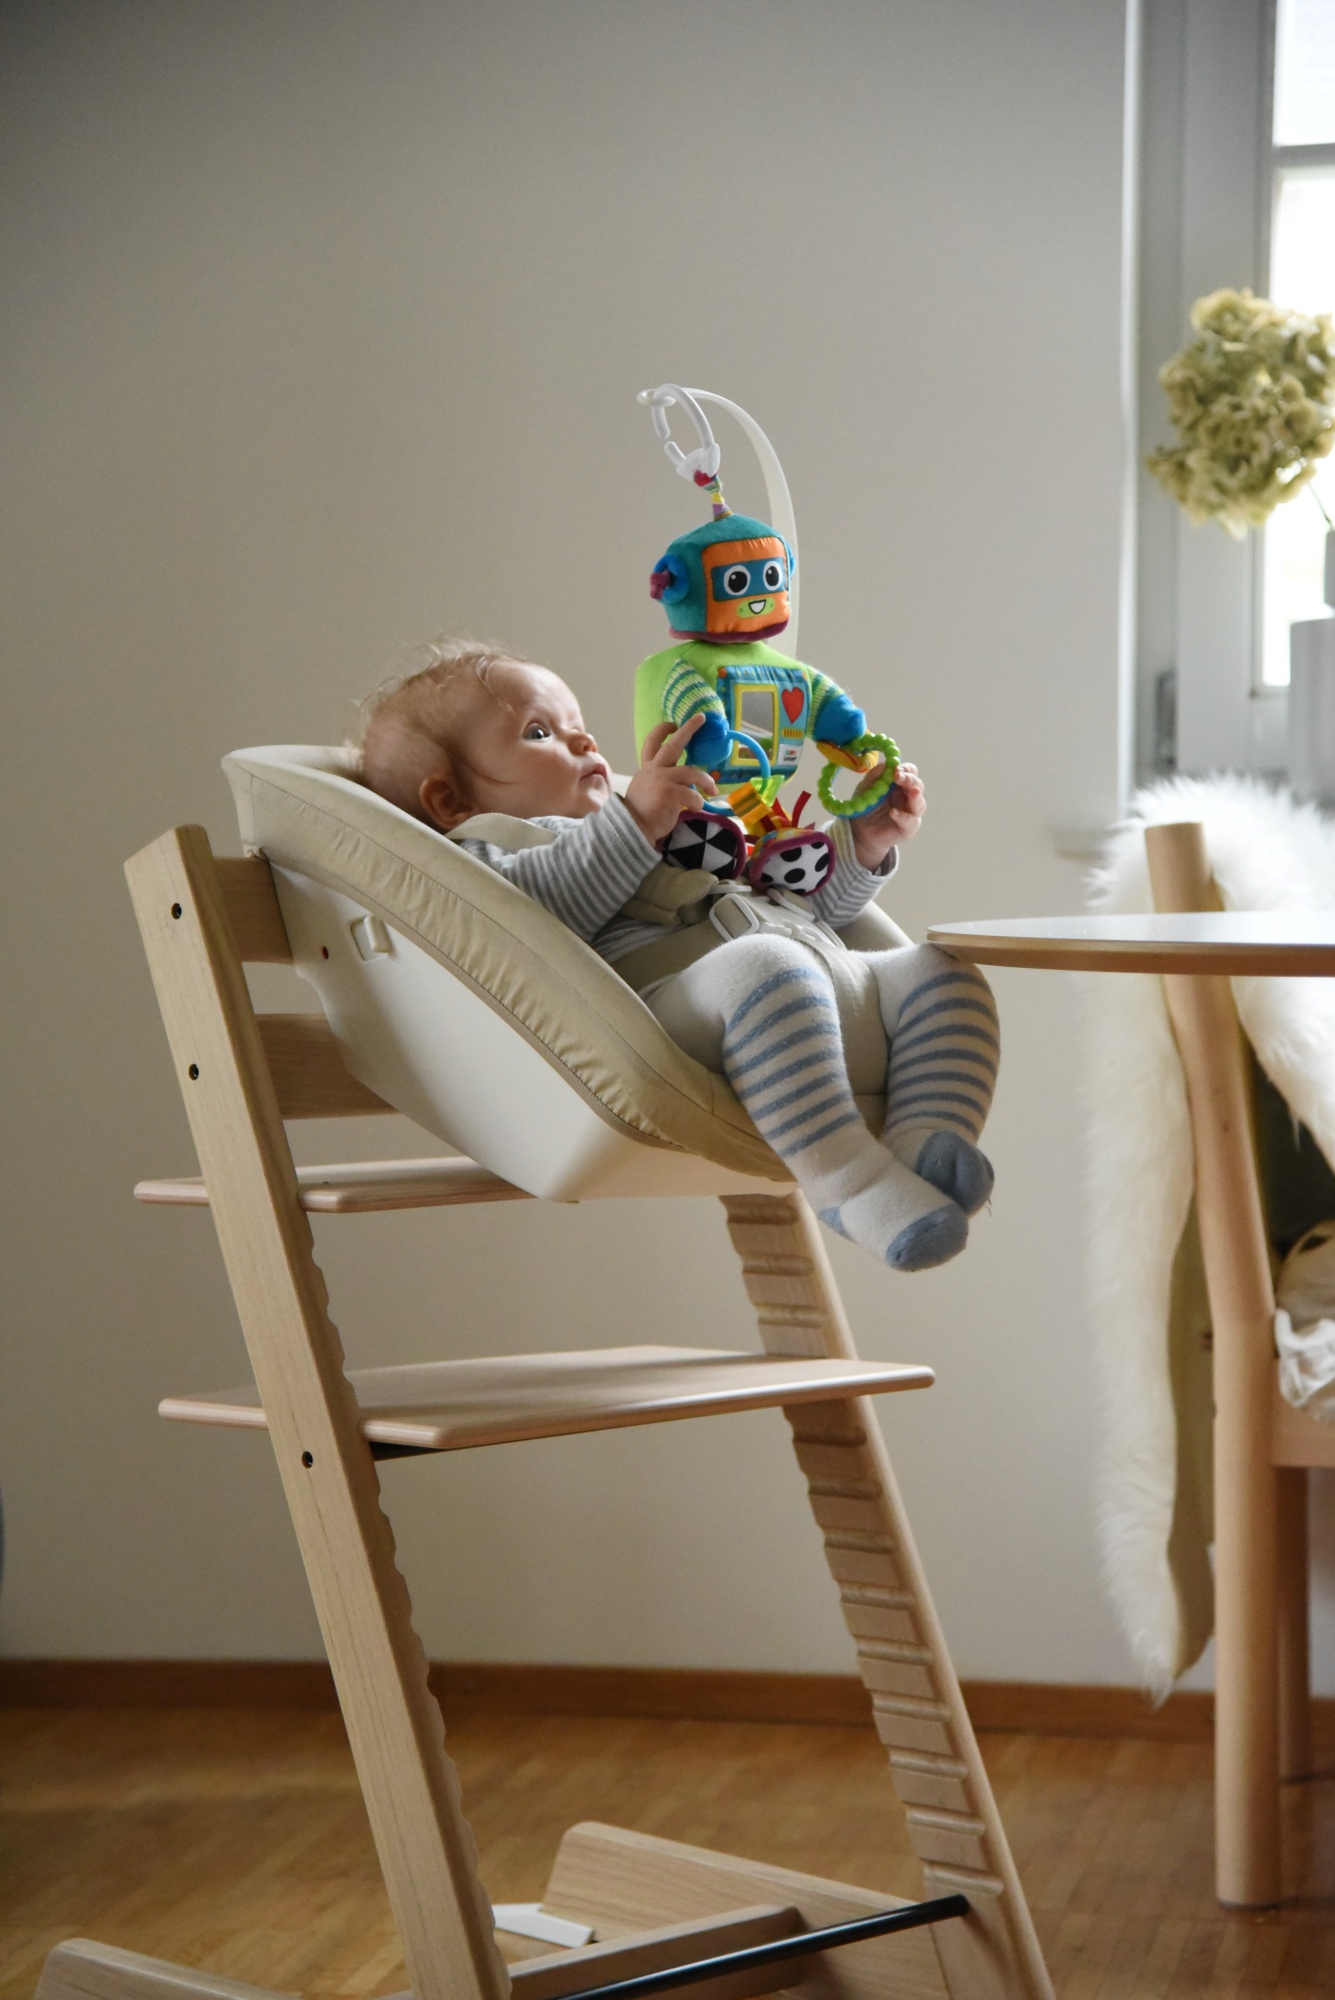 tripp trapp mit babyschale tripp trapp von stokke reduziert in 1 tag geliefert tripp trapp mit. Black Bedroom Furniture Sets. Home Design Ideas